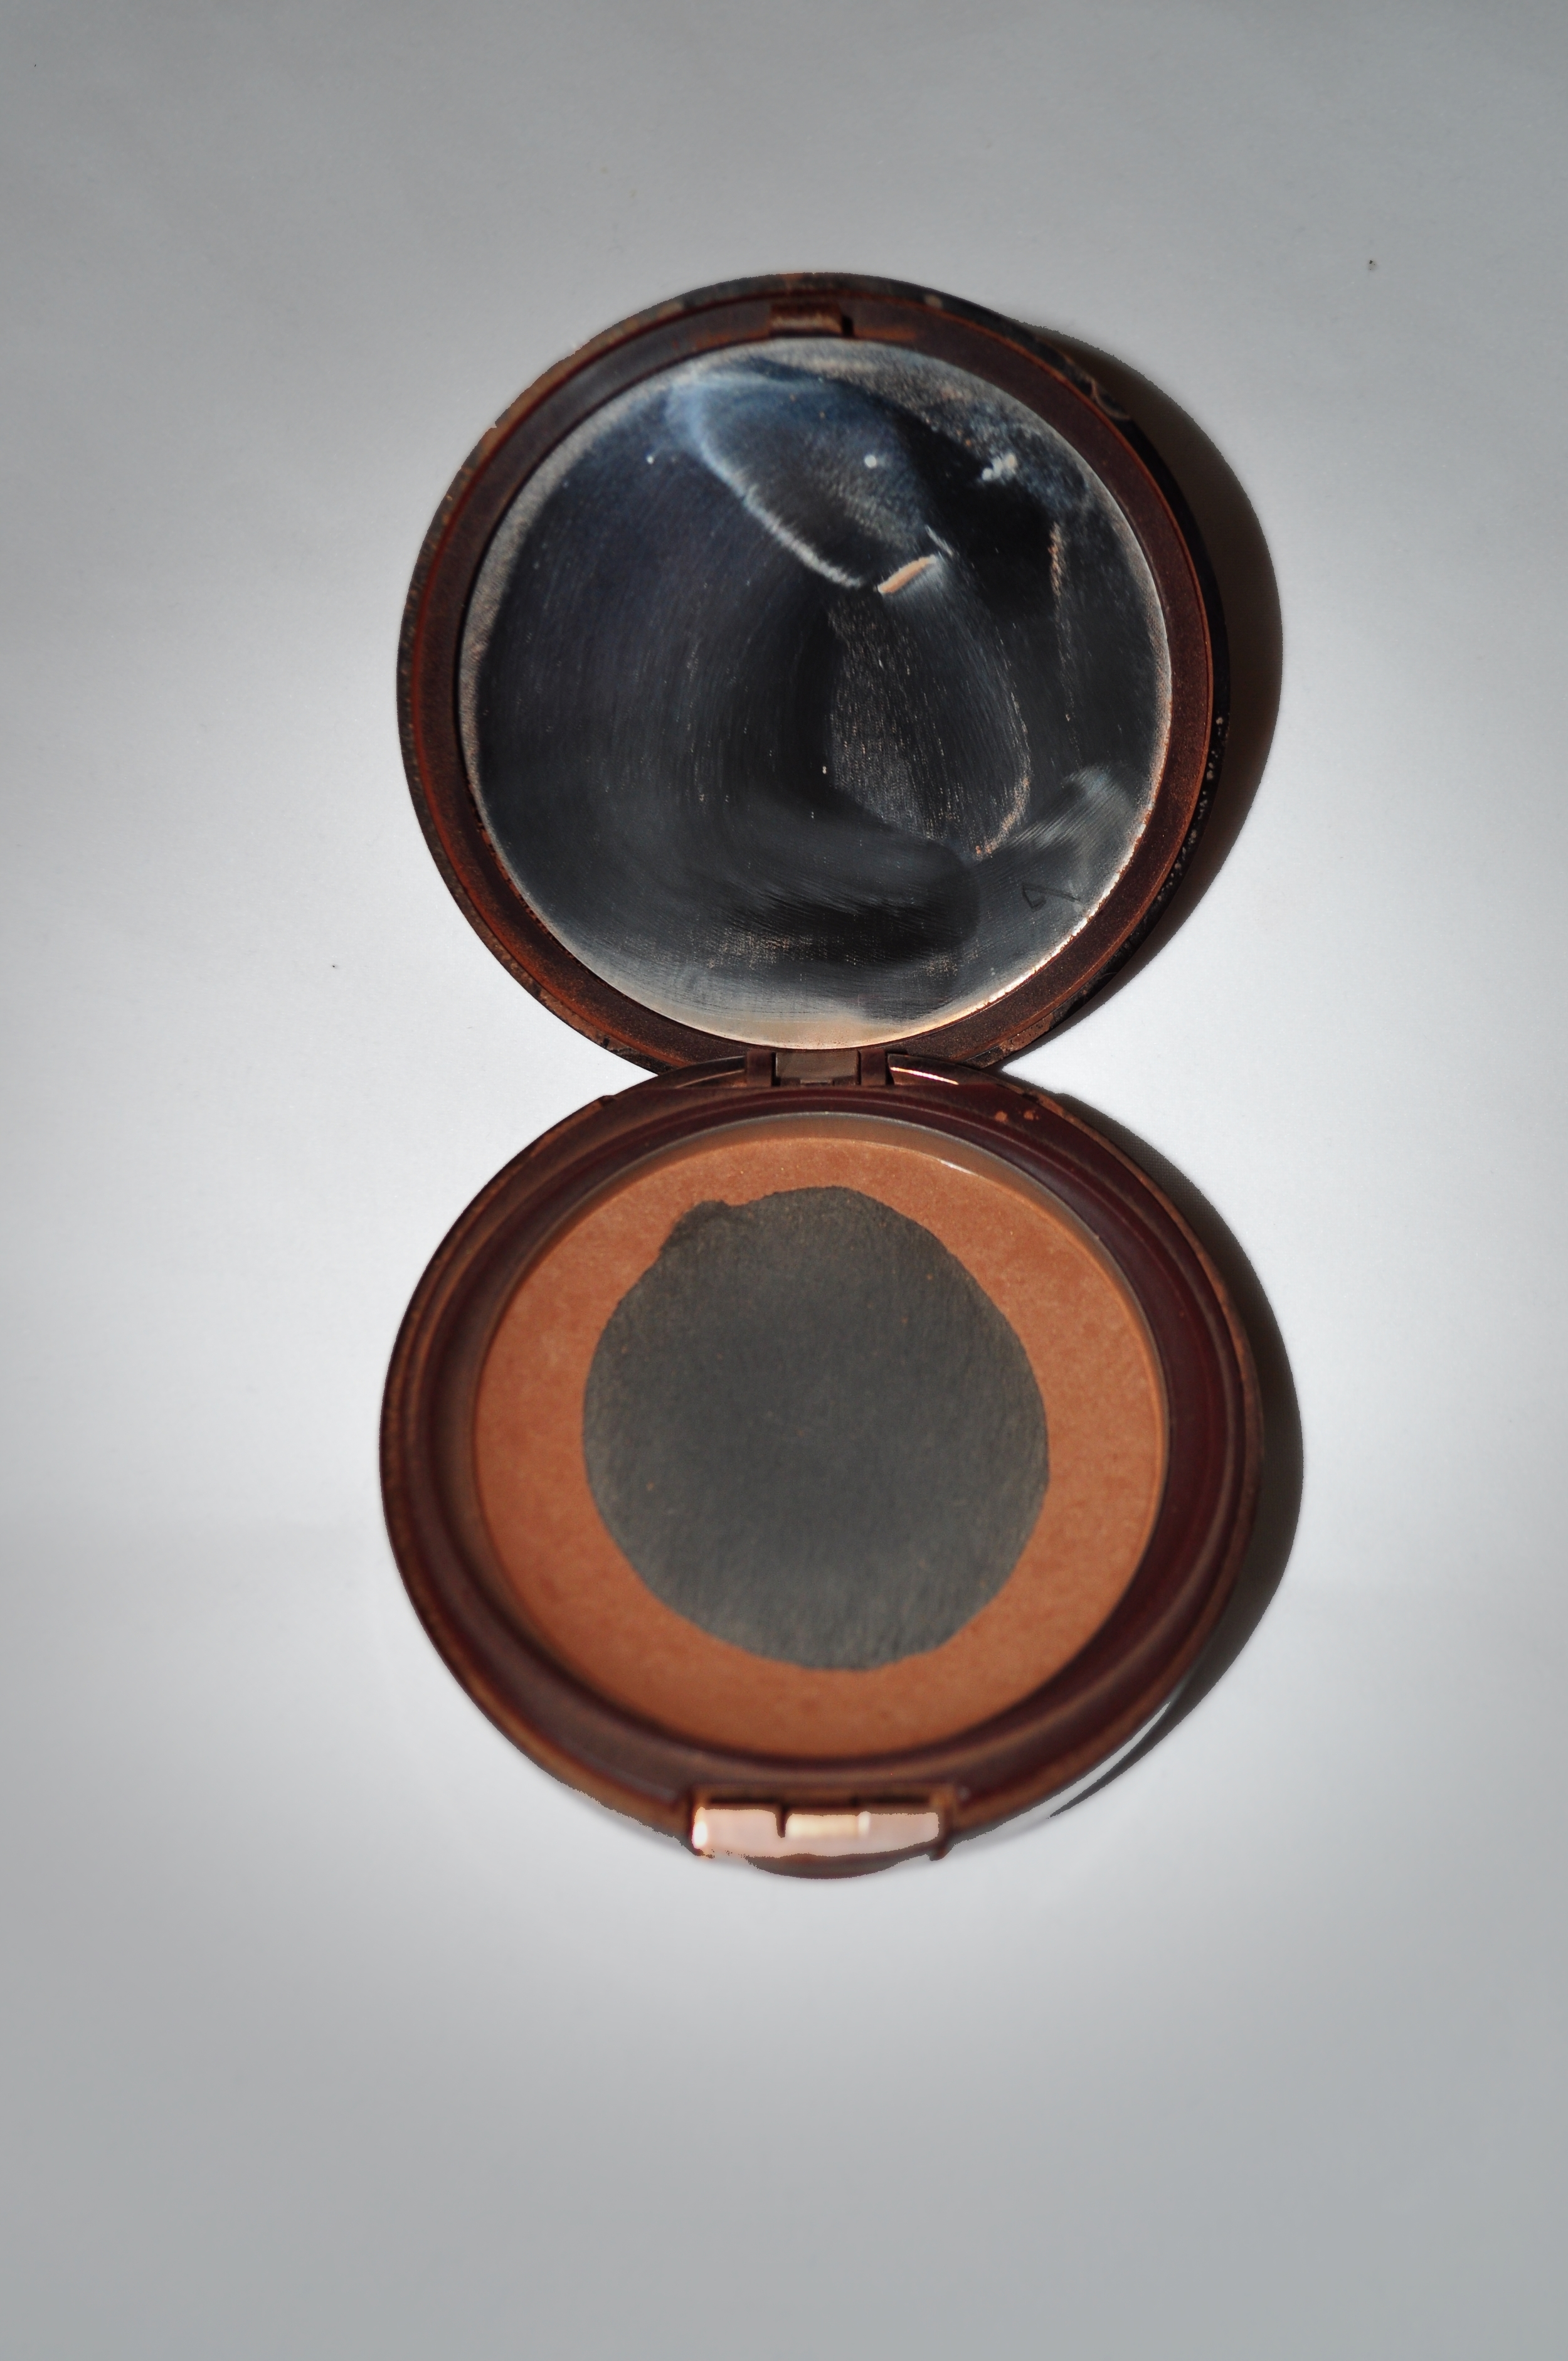 quest for bronzer pic 1.jpg